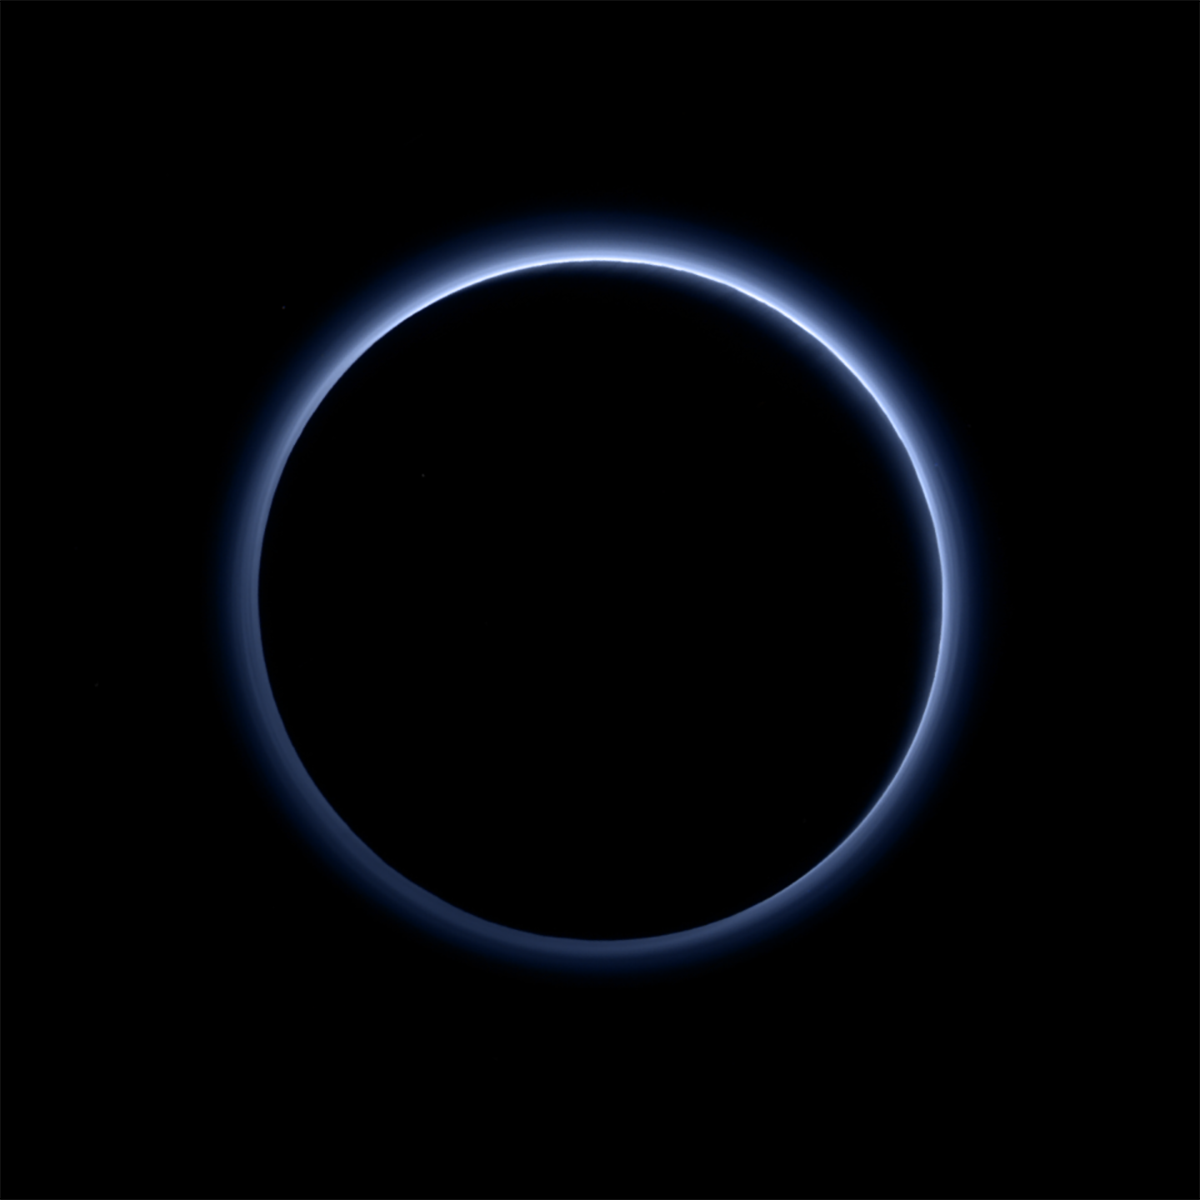 blue skies on pluto final 2 image